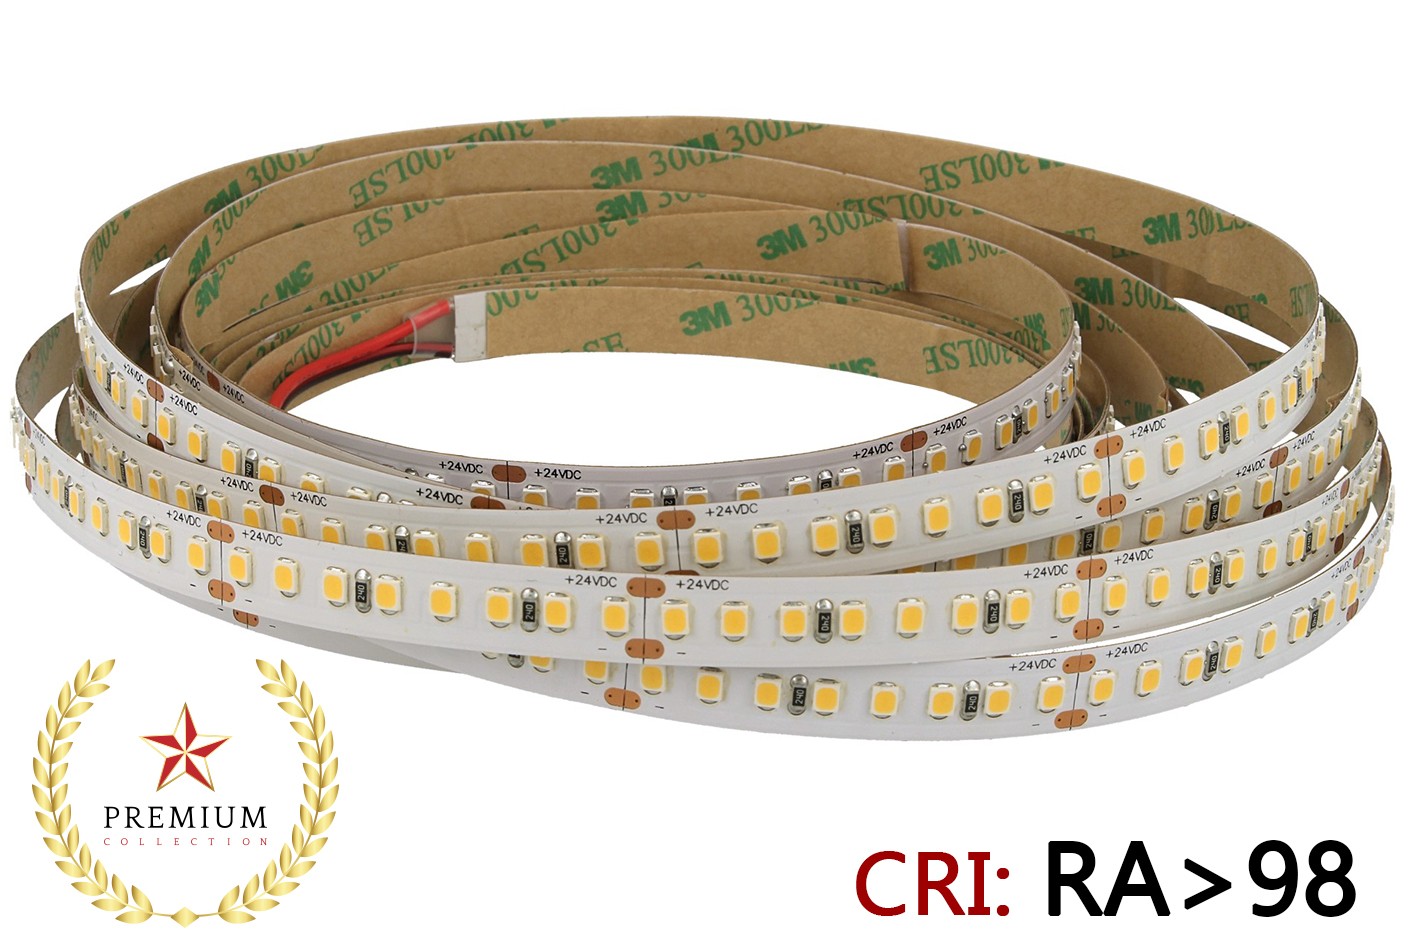 24V Bobina Led 18W/M CRI 98 Sun Feel Bianco Neutro 800 Smd 2835 5 Metri Come Luce Del Sole - PZ